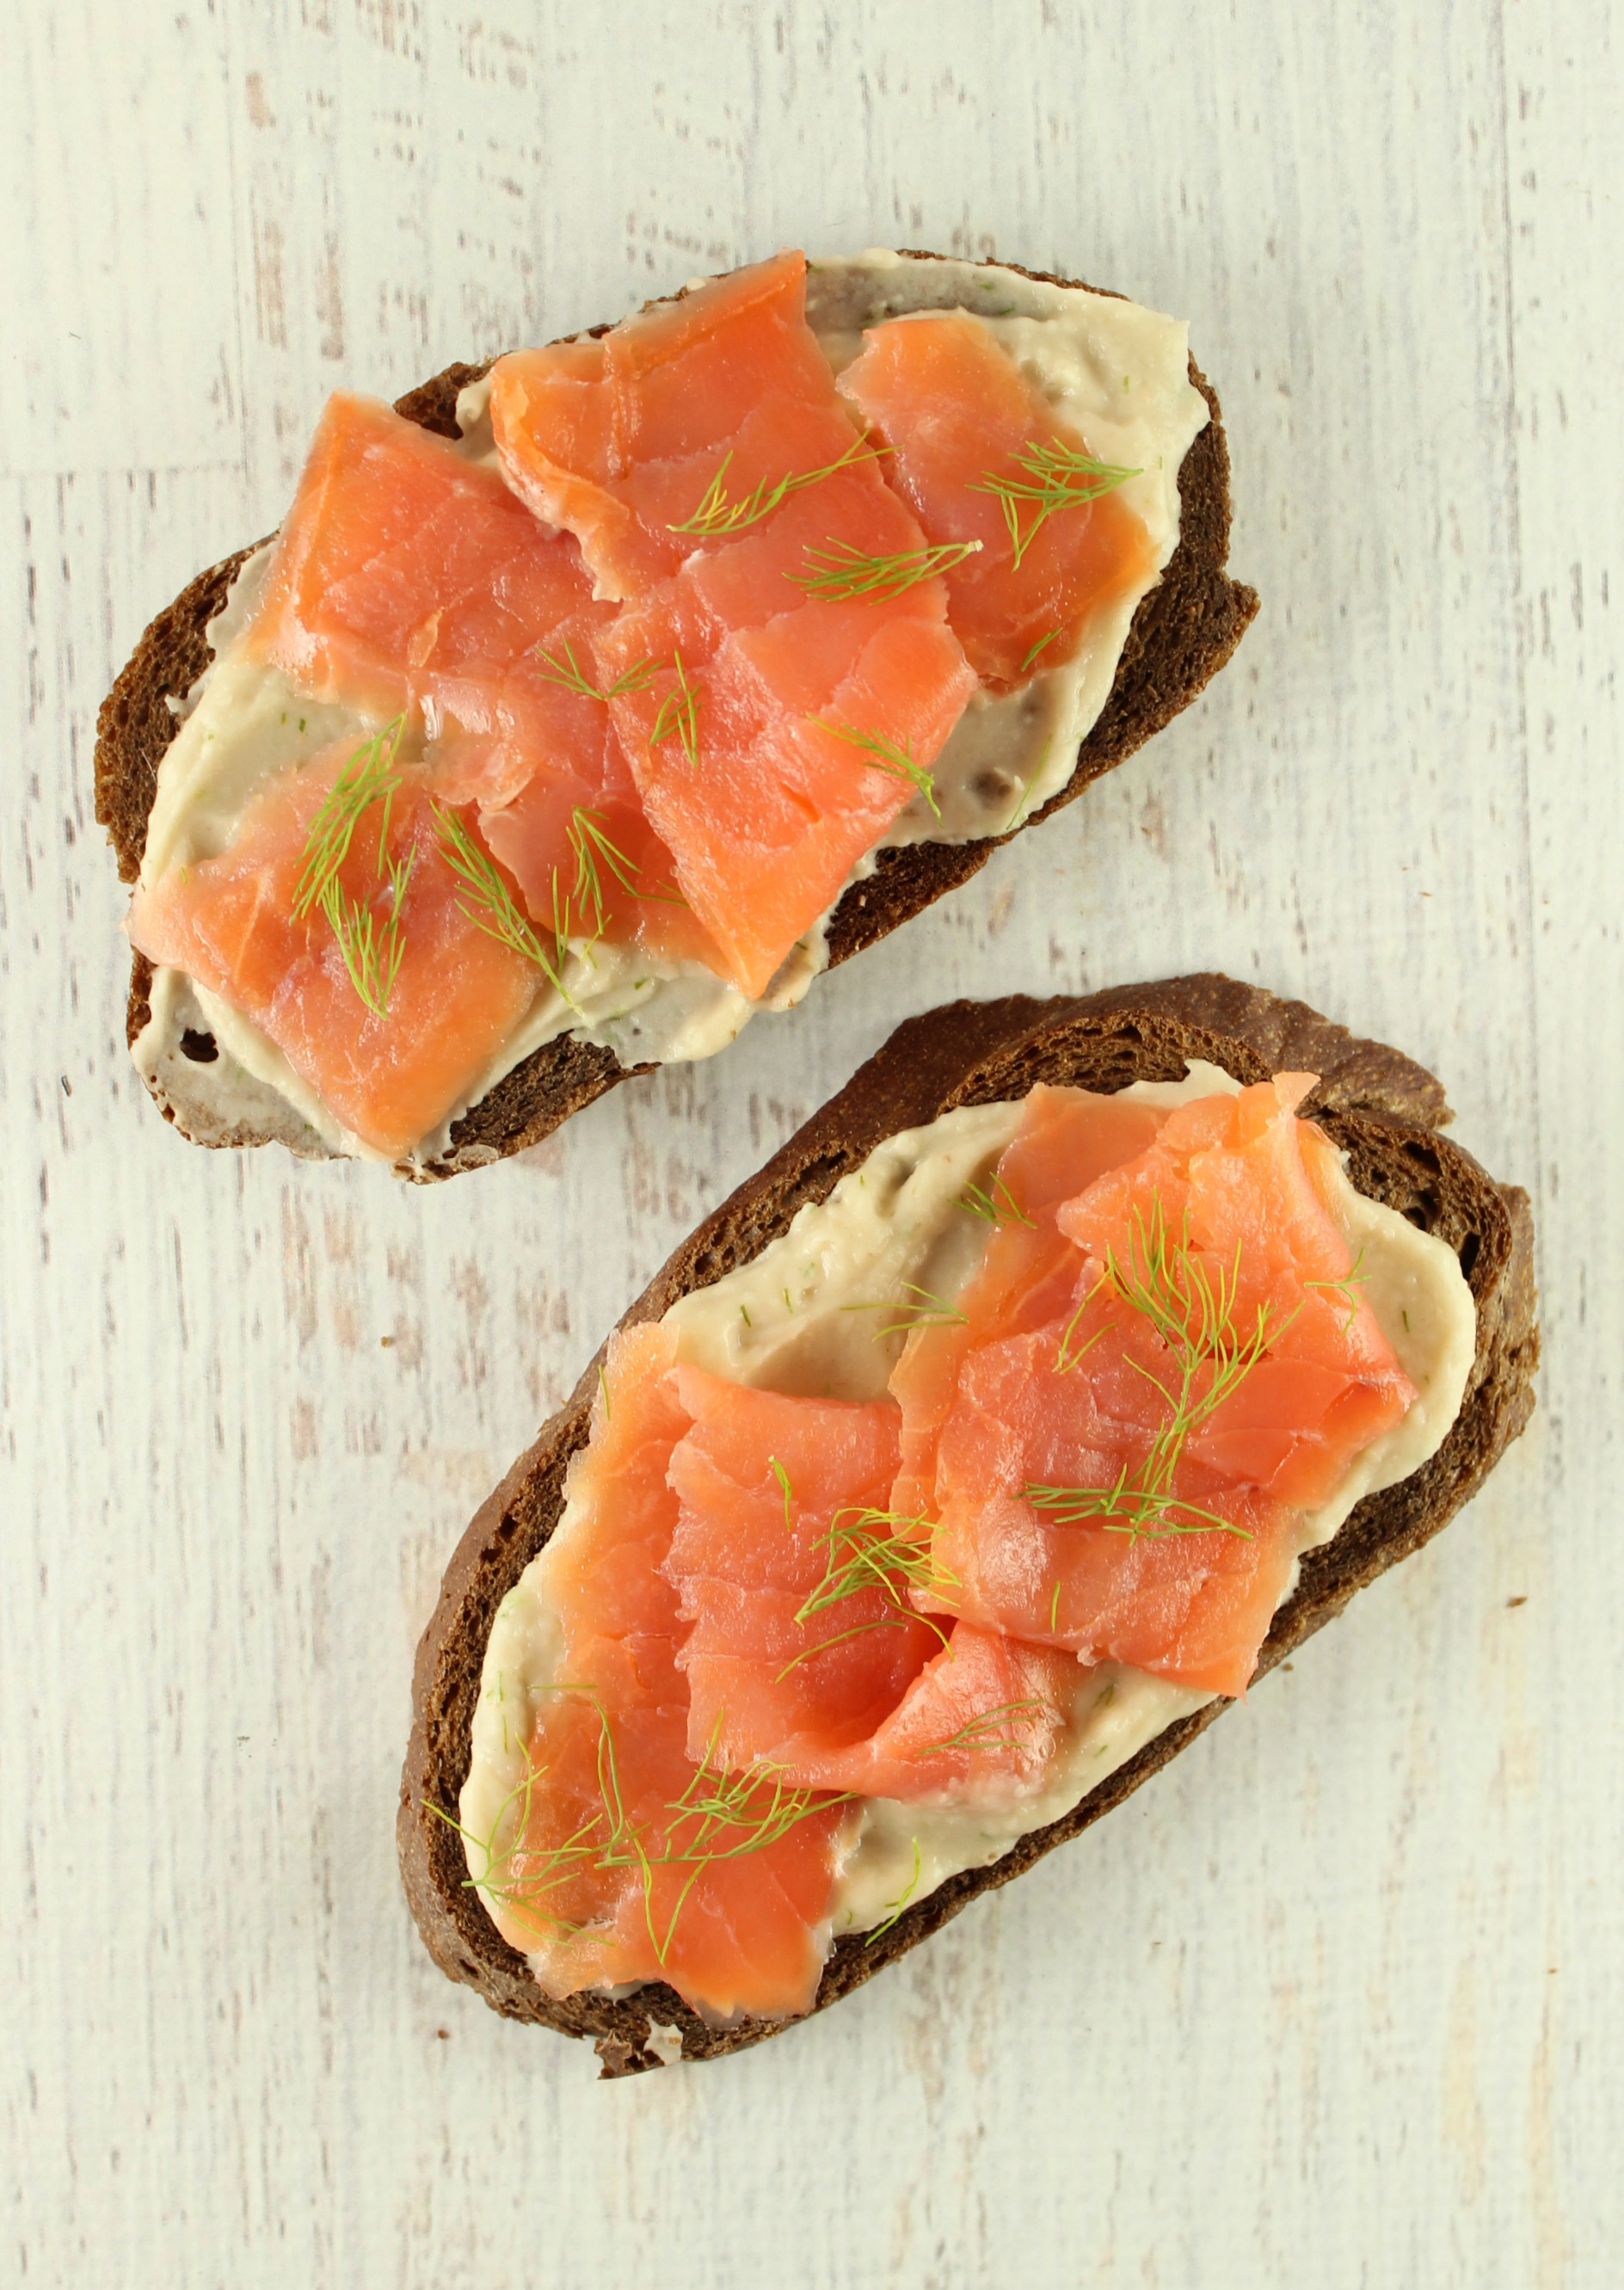 Roasted Garlic and Dill Bean Spread with Smoked Salmon